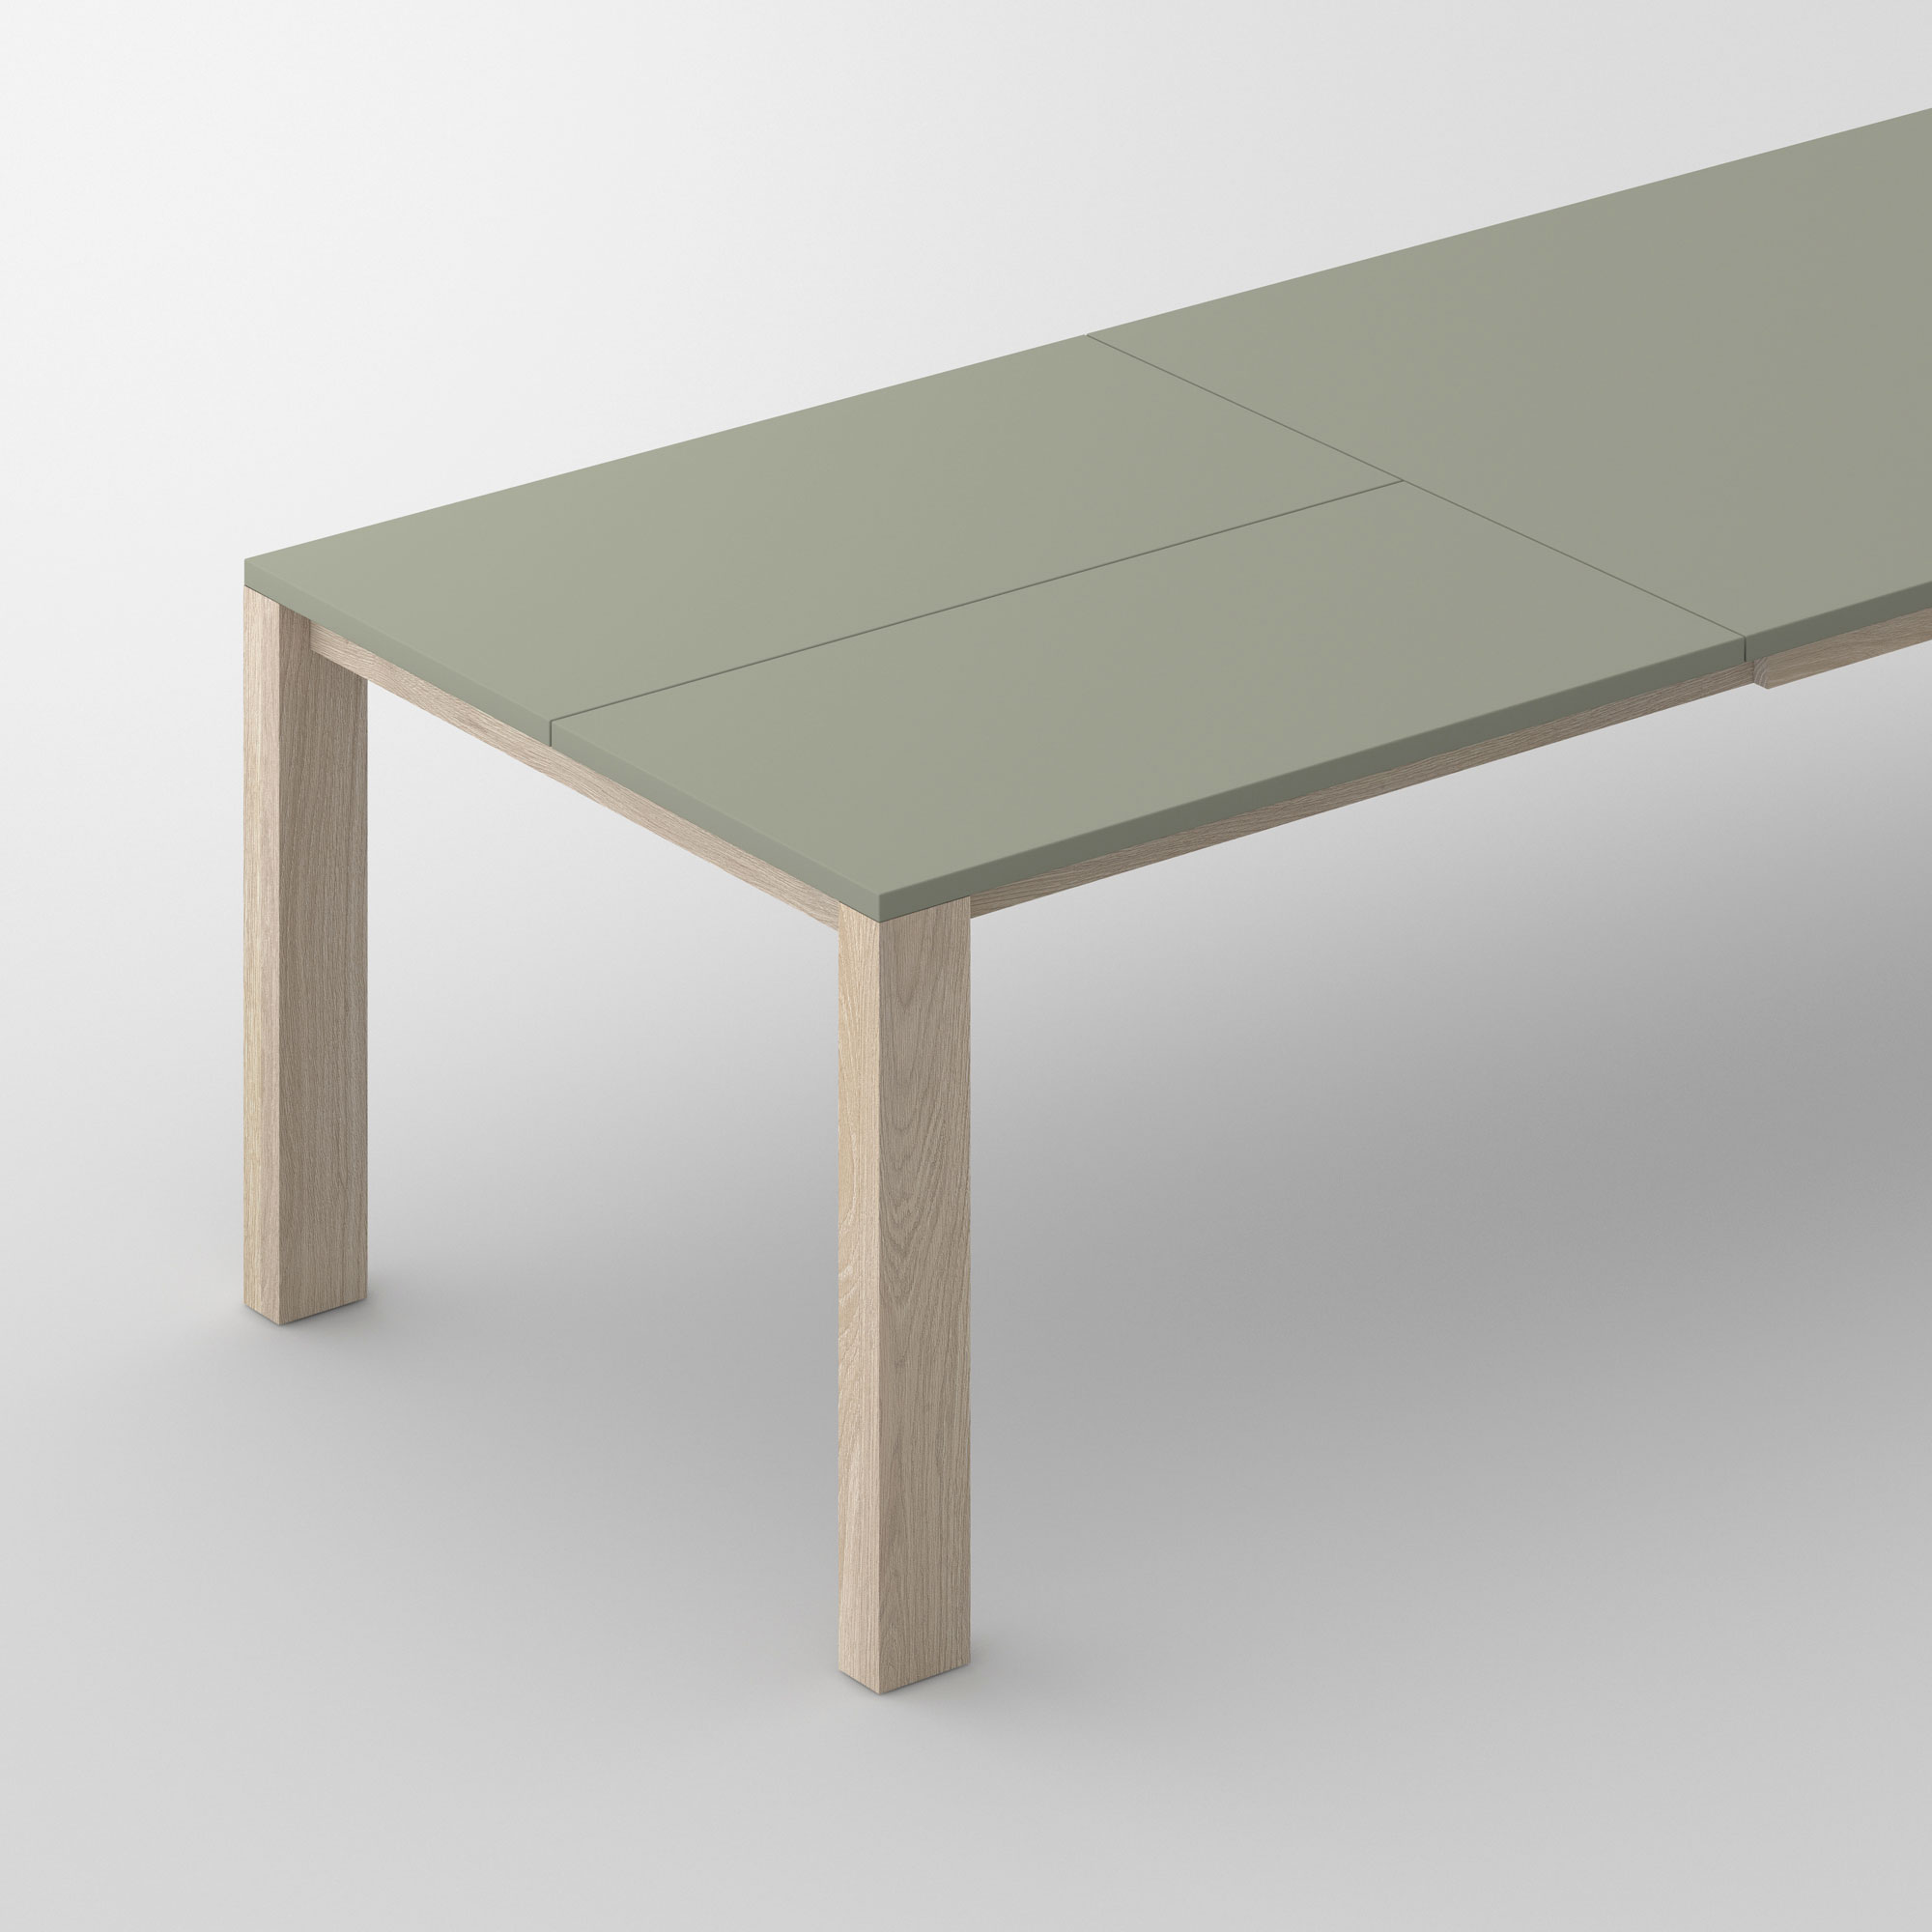 Extensible Linoleum Wood Table VARIUS BUTTERFLY LINO custom made in solid wood by vitamin design